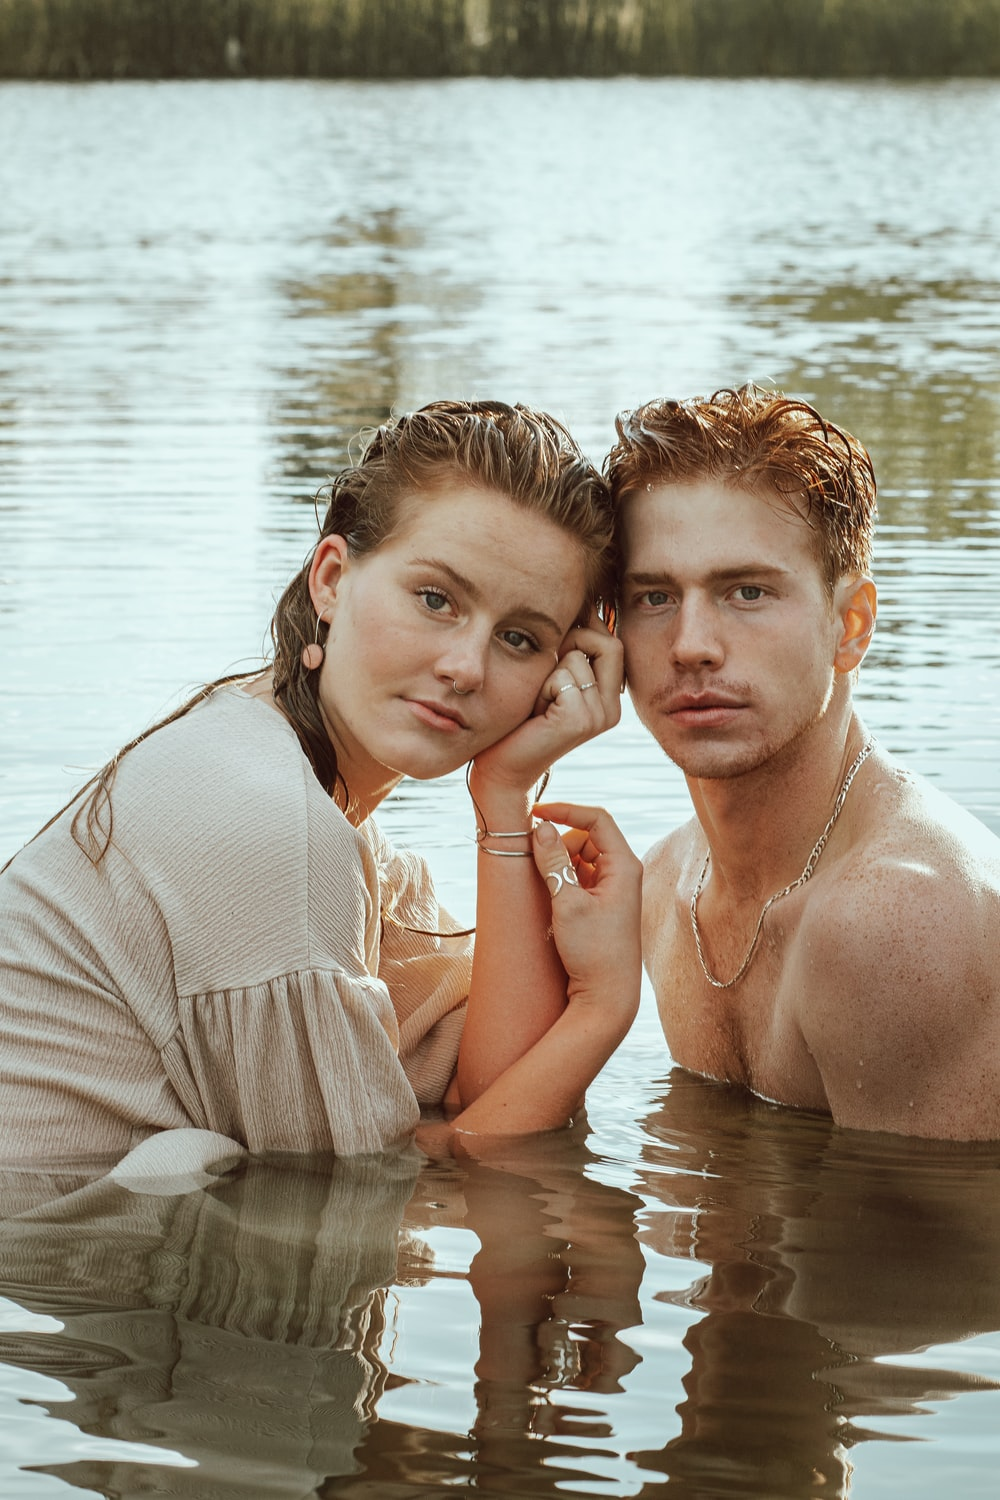 man and woman in water